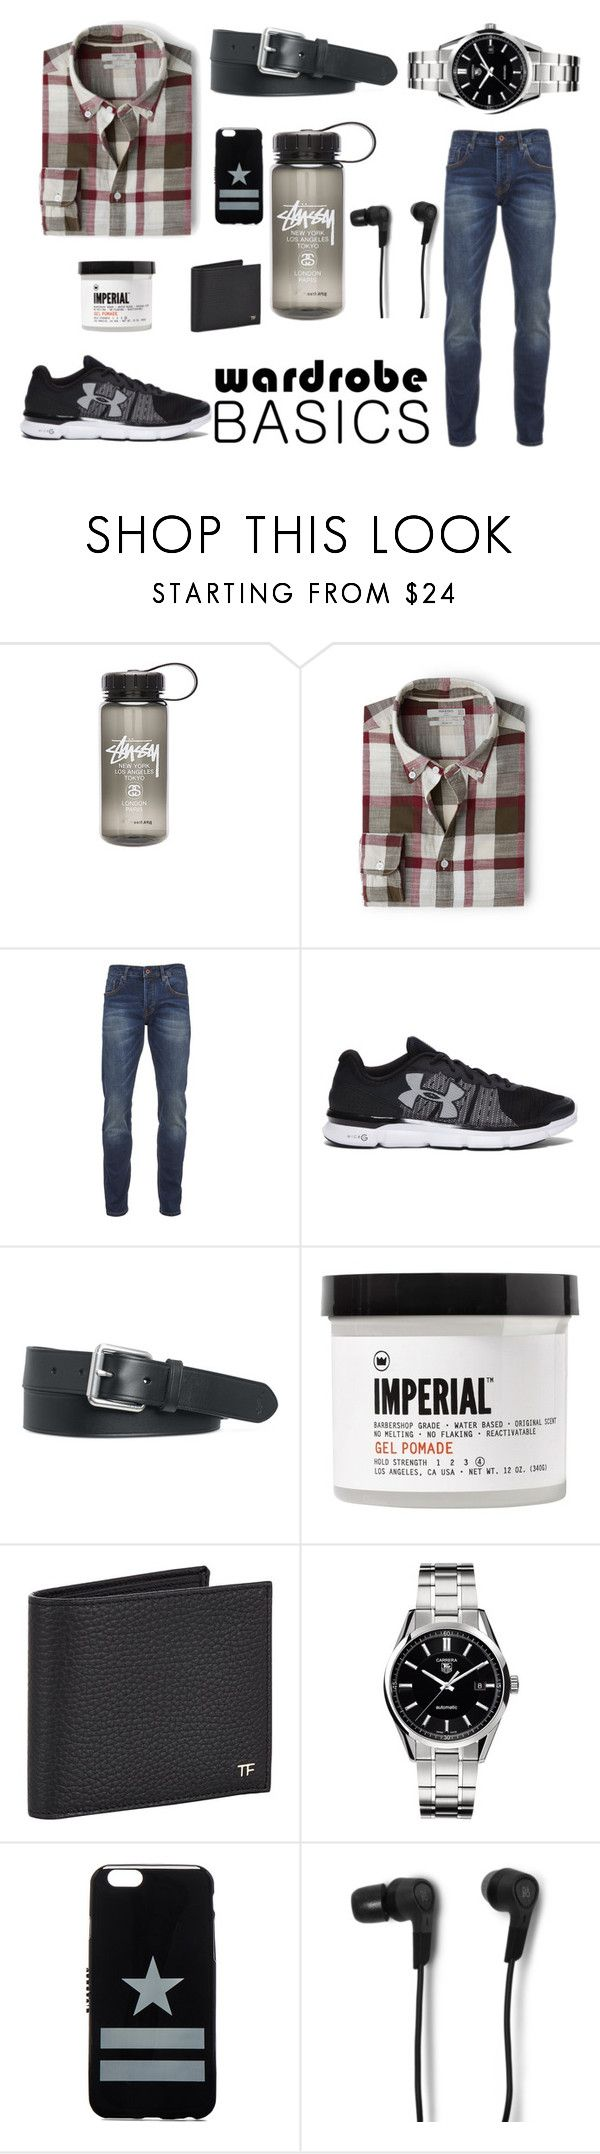 """""""heey"""" by ashfur123 on Polyvore featuring Stussy, MANGO MAN, Scotch & Soda, Under Armour, Polo Ralph Lauren, Imperial Barber Products, Tom Ford, Tag Heuer, Givenchy and B&O Play"""